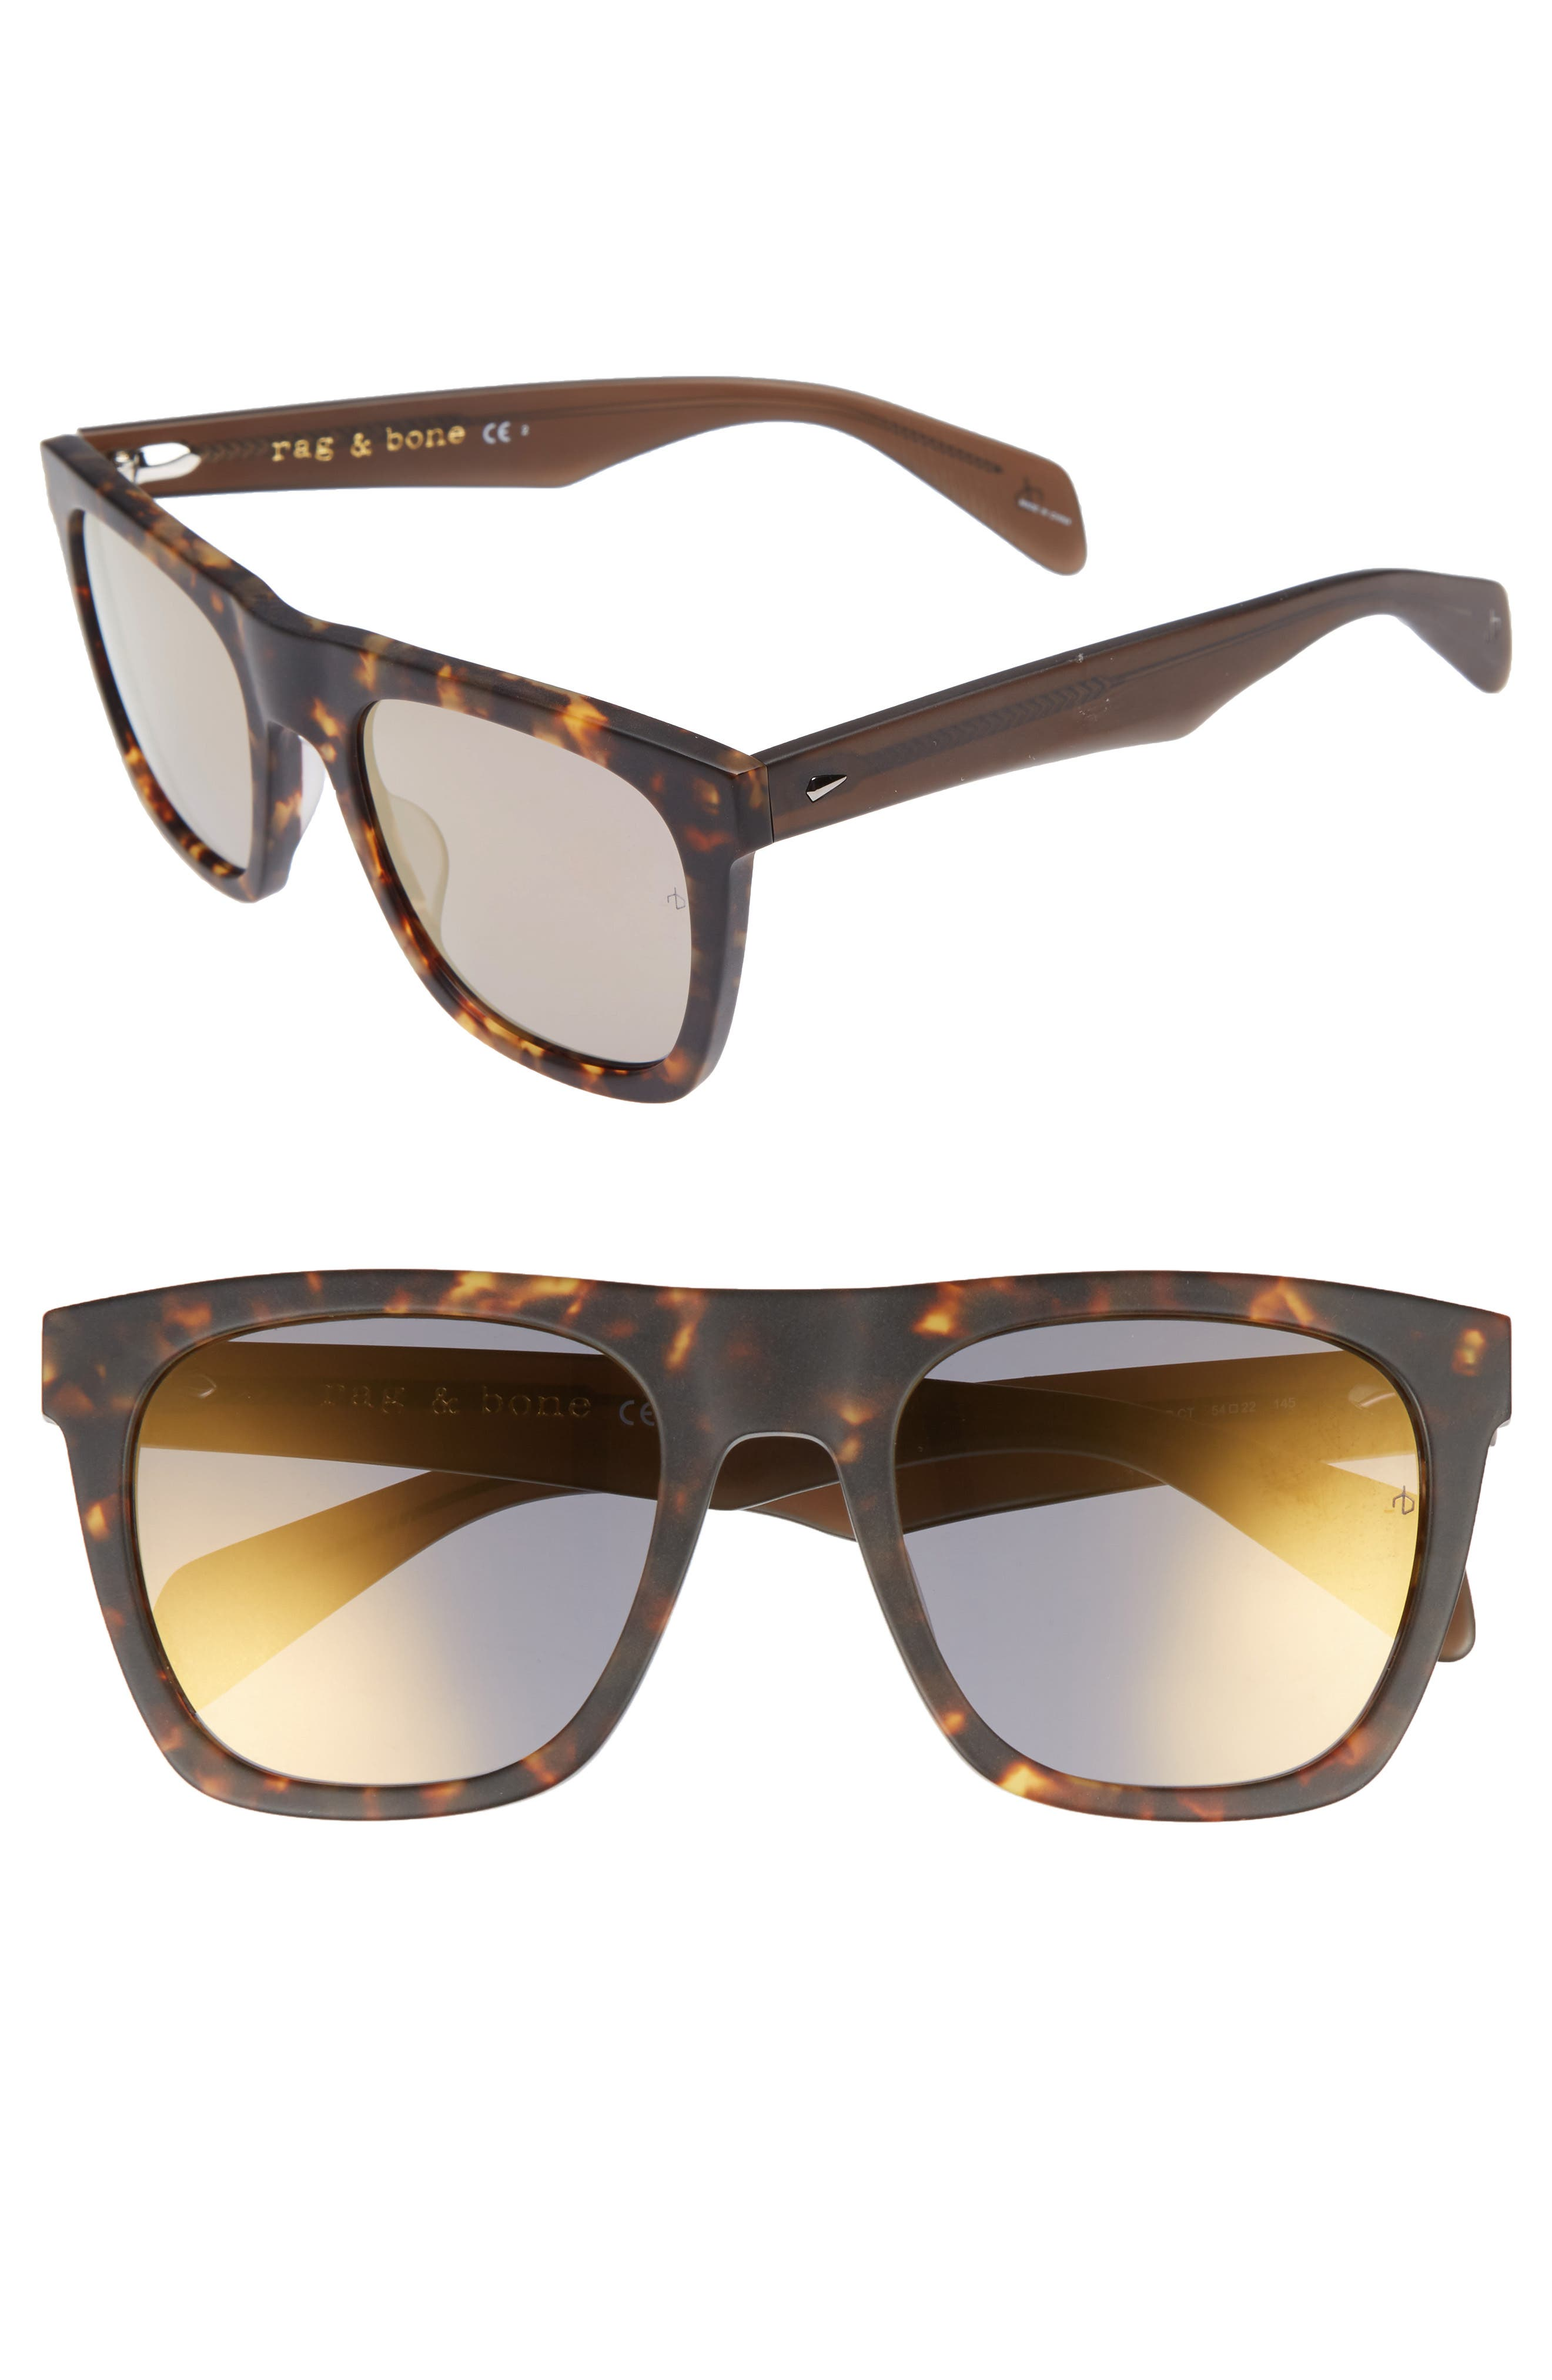 54mm Sunglasses,                             Main thumbnail 1, color,                             Matte Havana